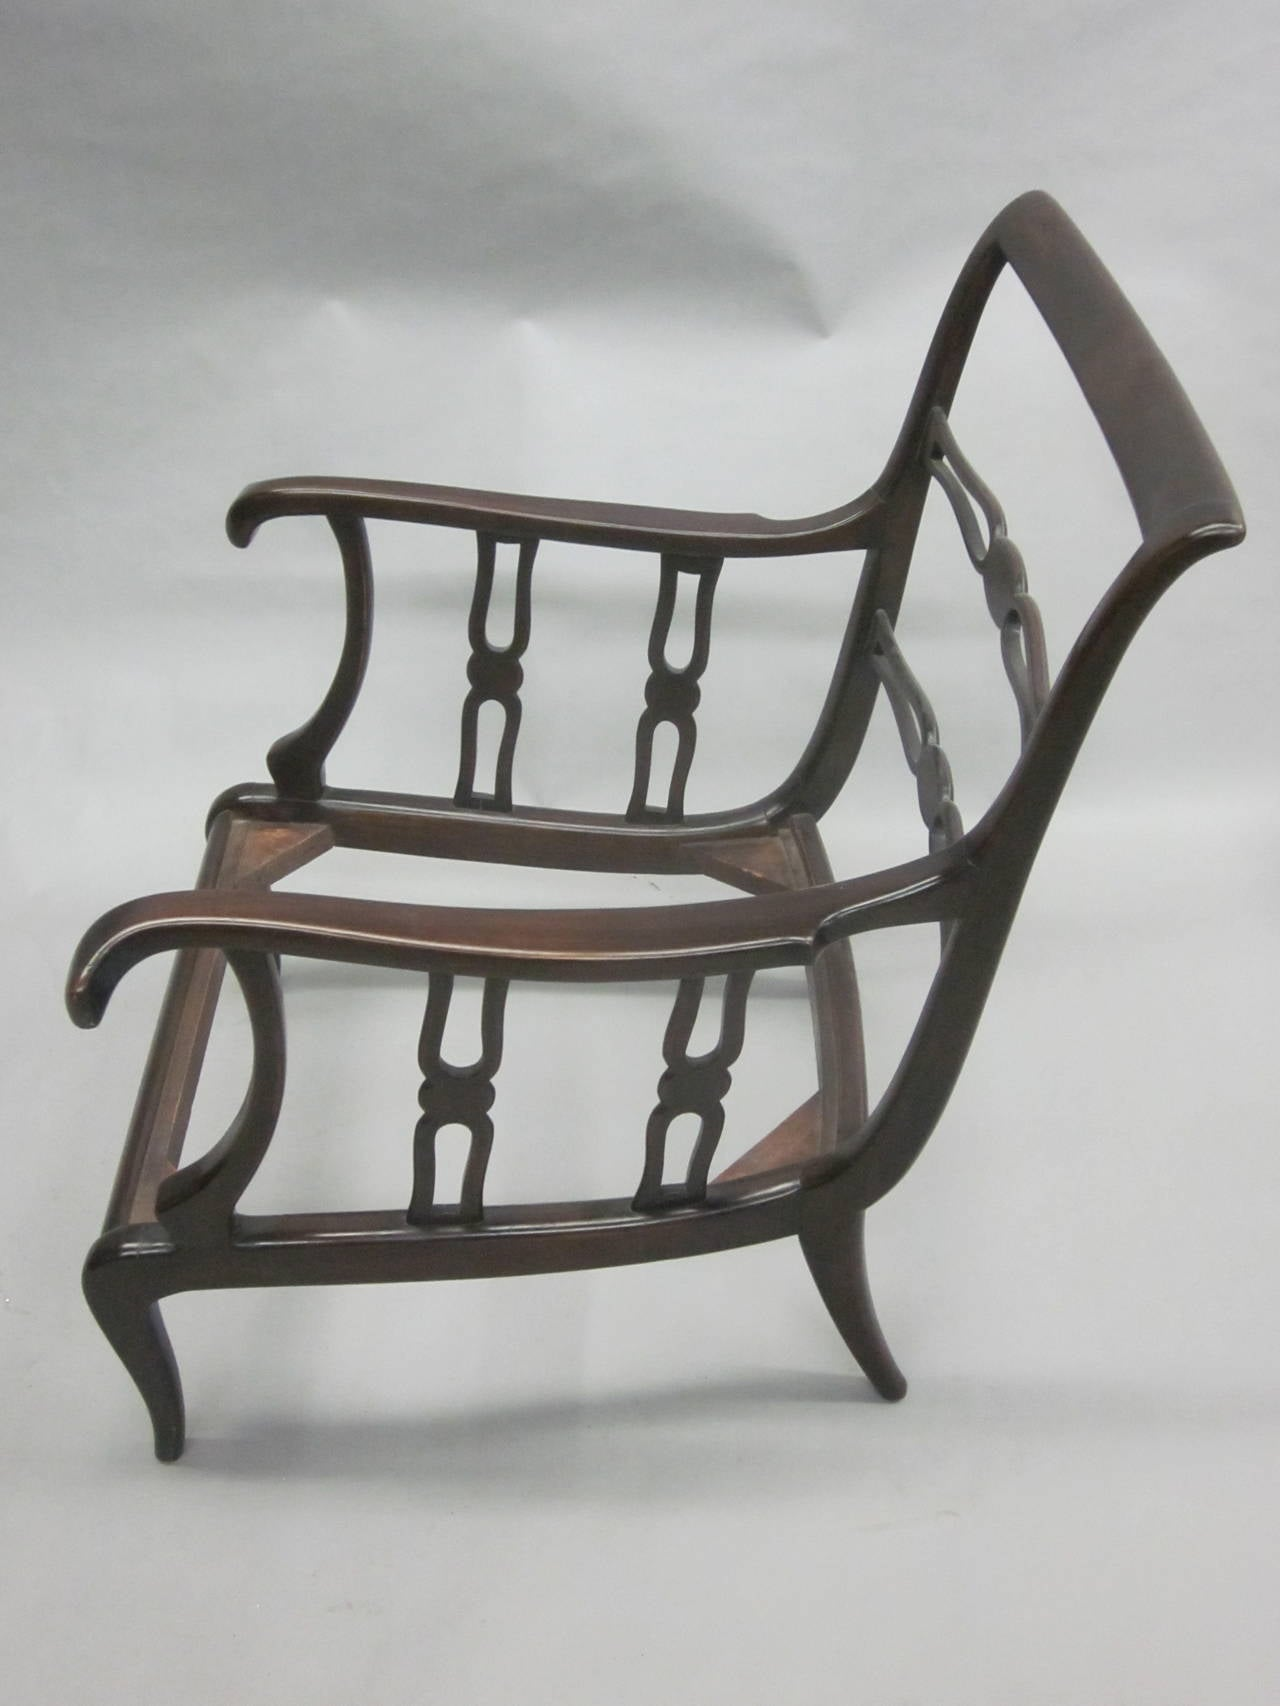 Pair of Italian Mid-Century Modern Neoclassical Lounge Chairs by Paolo Buffa For Sale 5